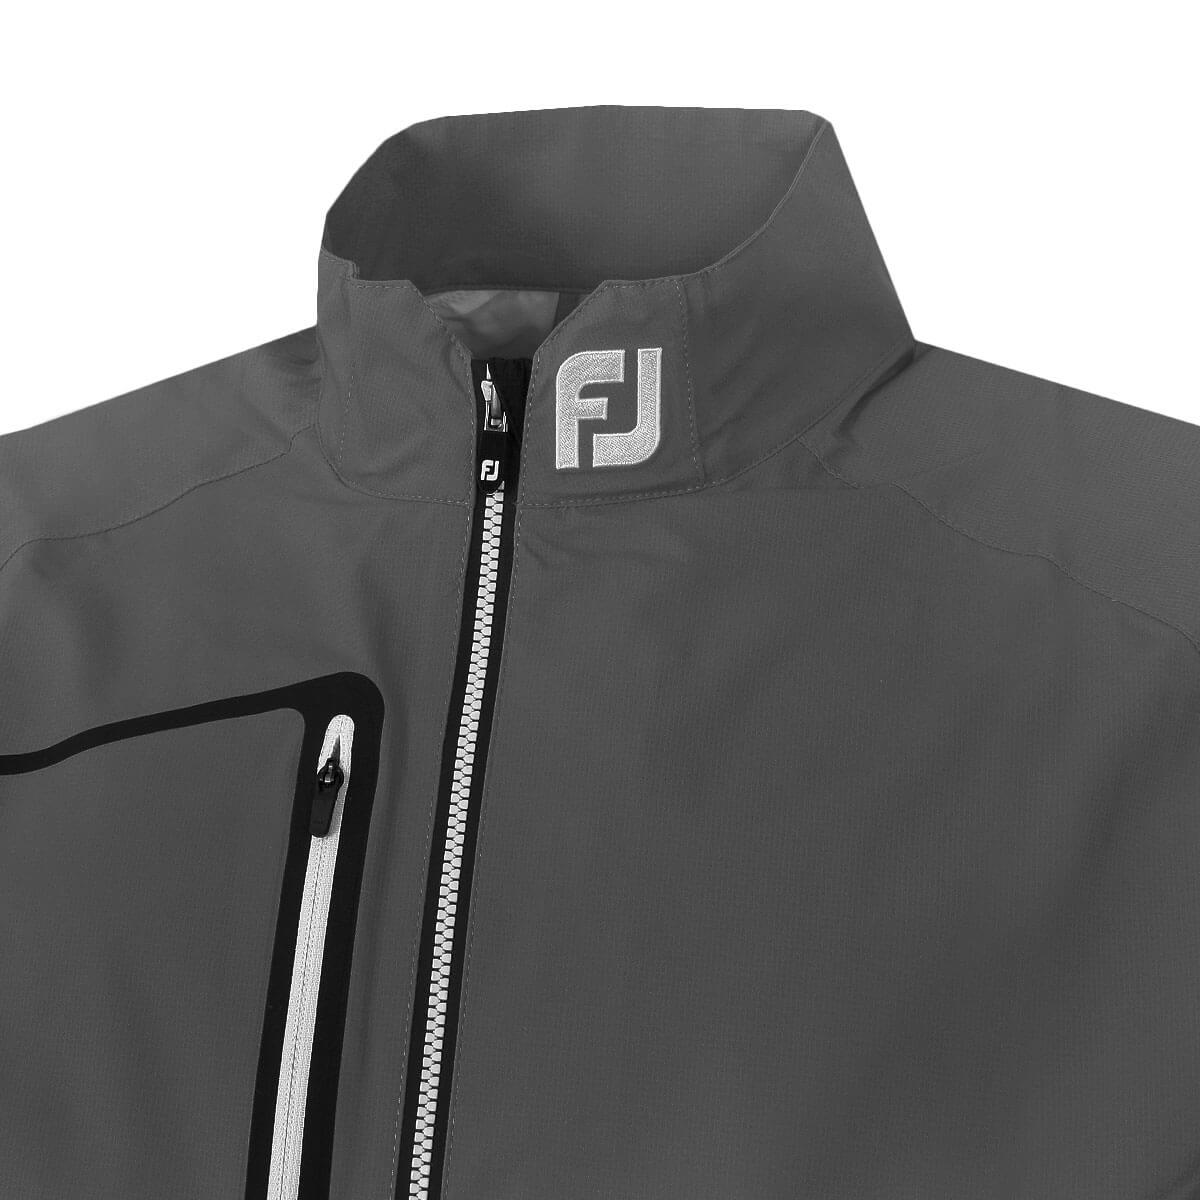 Footjoy-Mens-Hydrolite-Rain-Waterproof-Lightweight-FJ-Golf-Jacket-47-OFF-RRP thumbnail 4